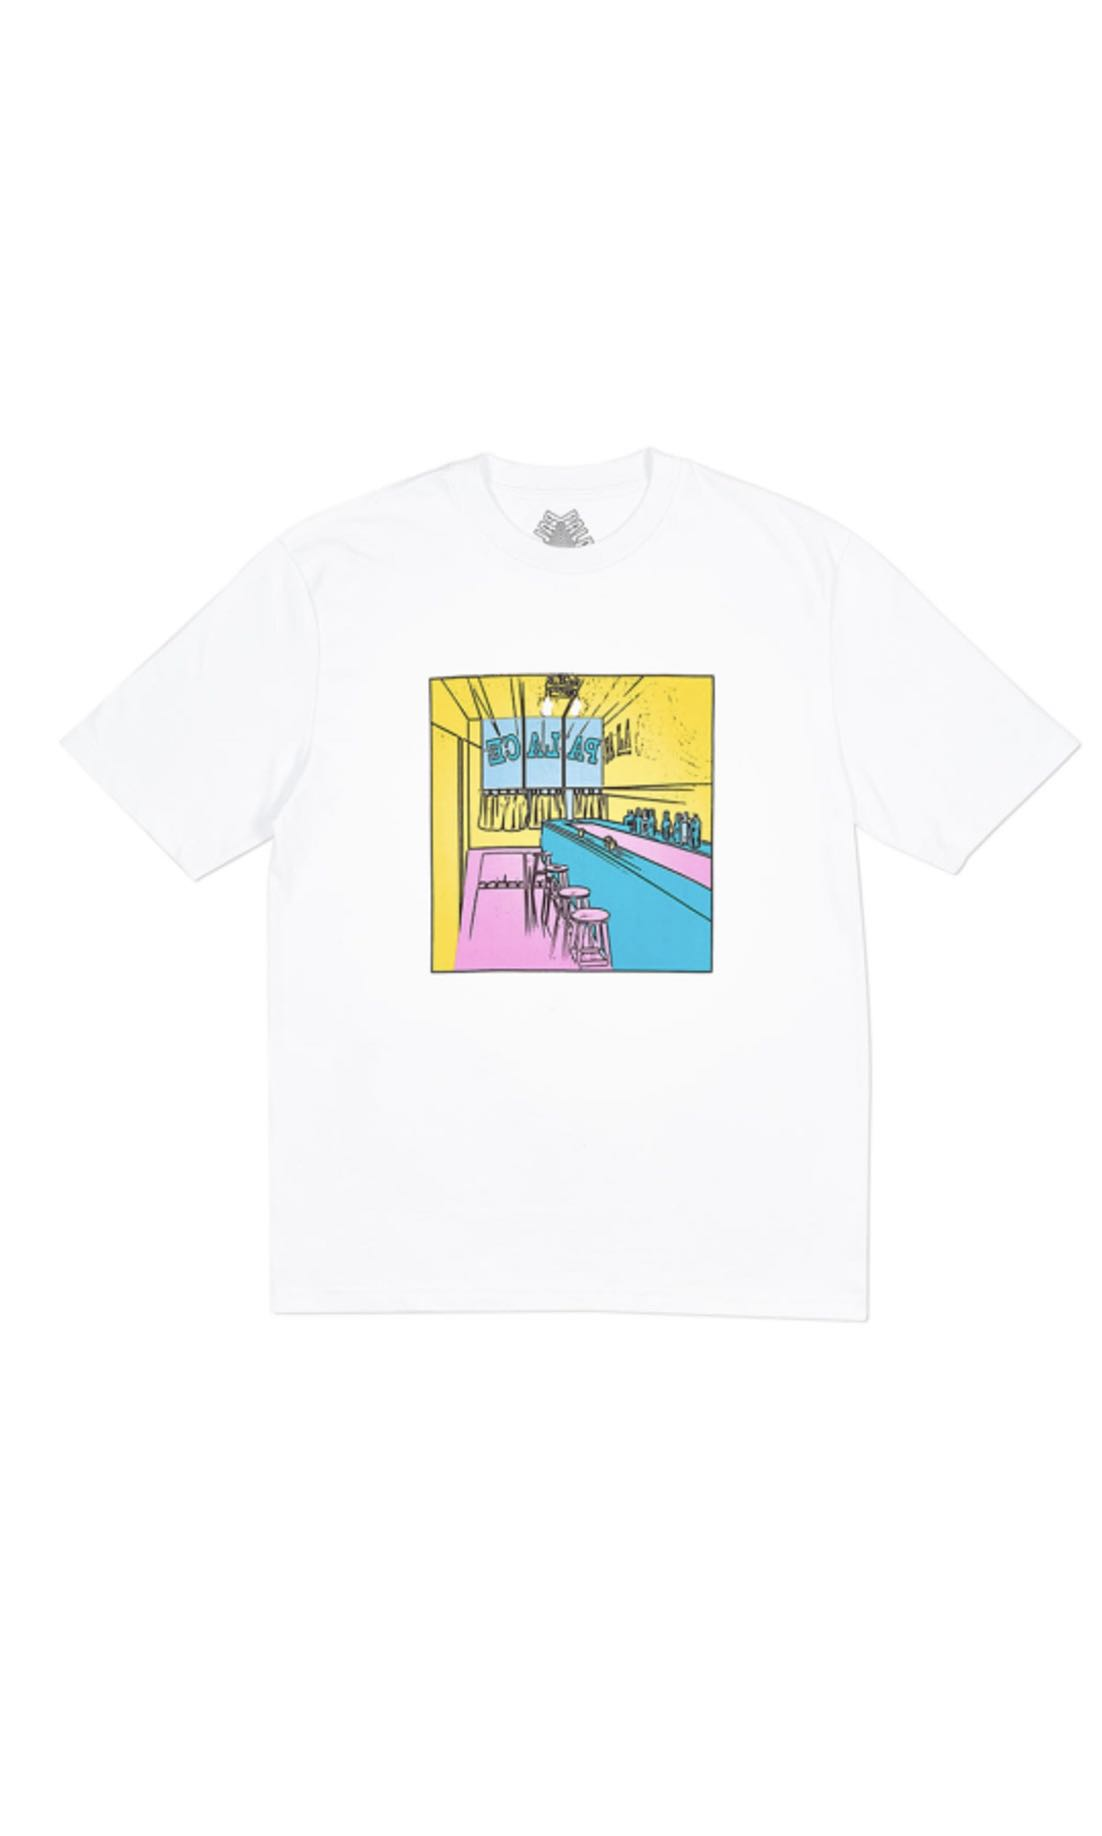 baffc28552ef Palace scheisse face tee (white)